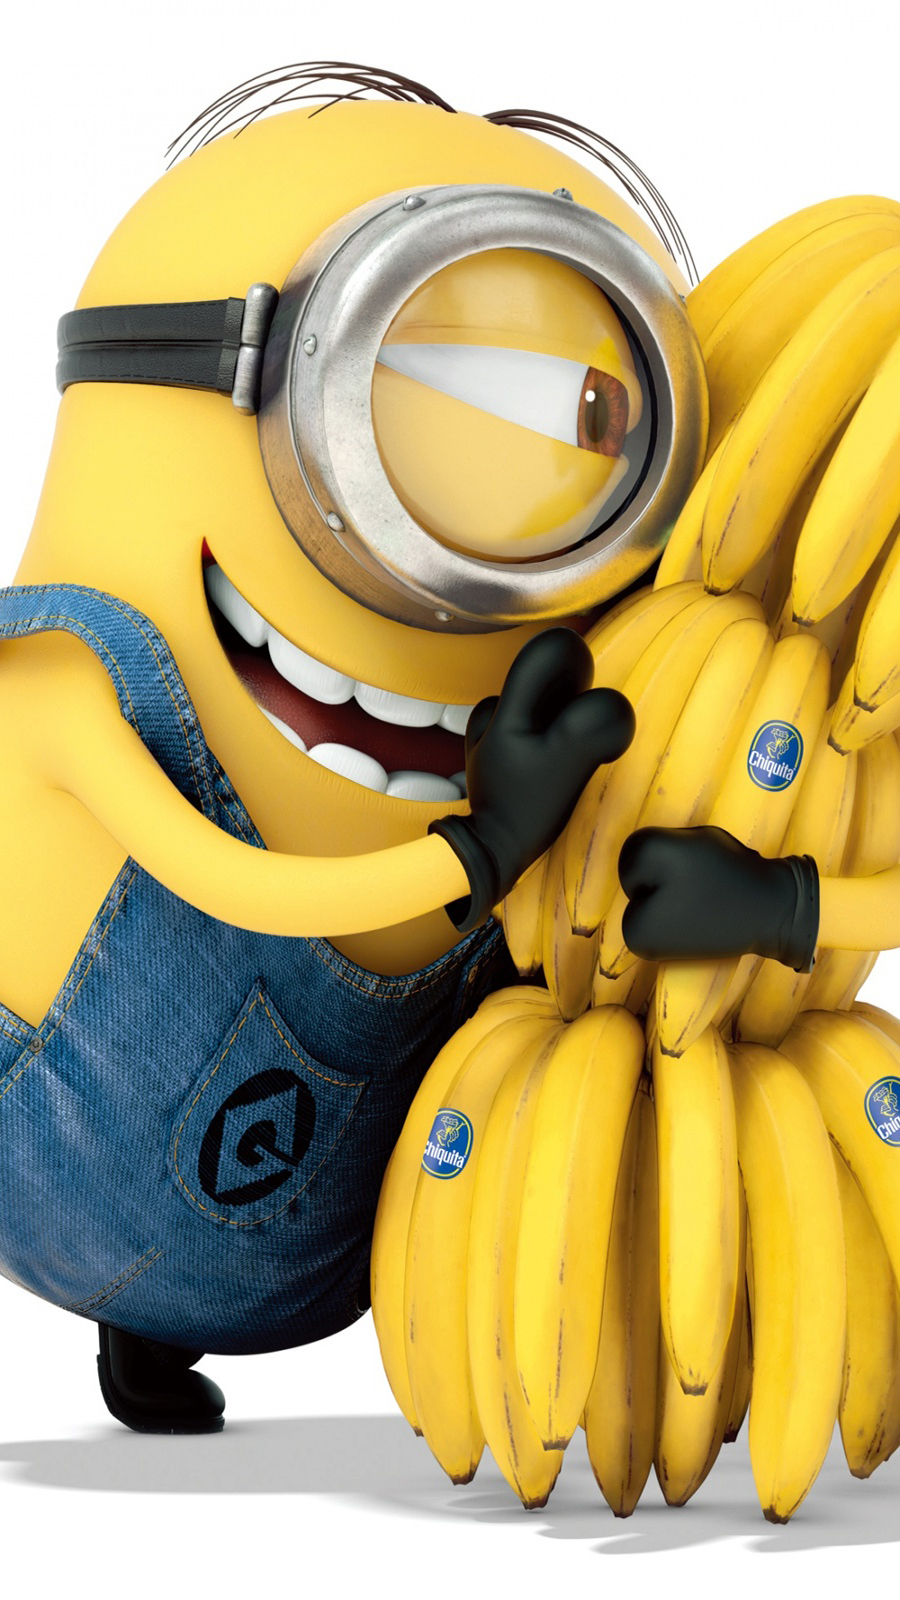 Despicable Me Minion Hugging Bananas Wallpapers Free Download